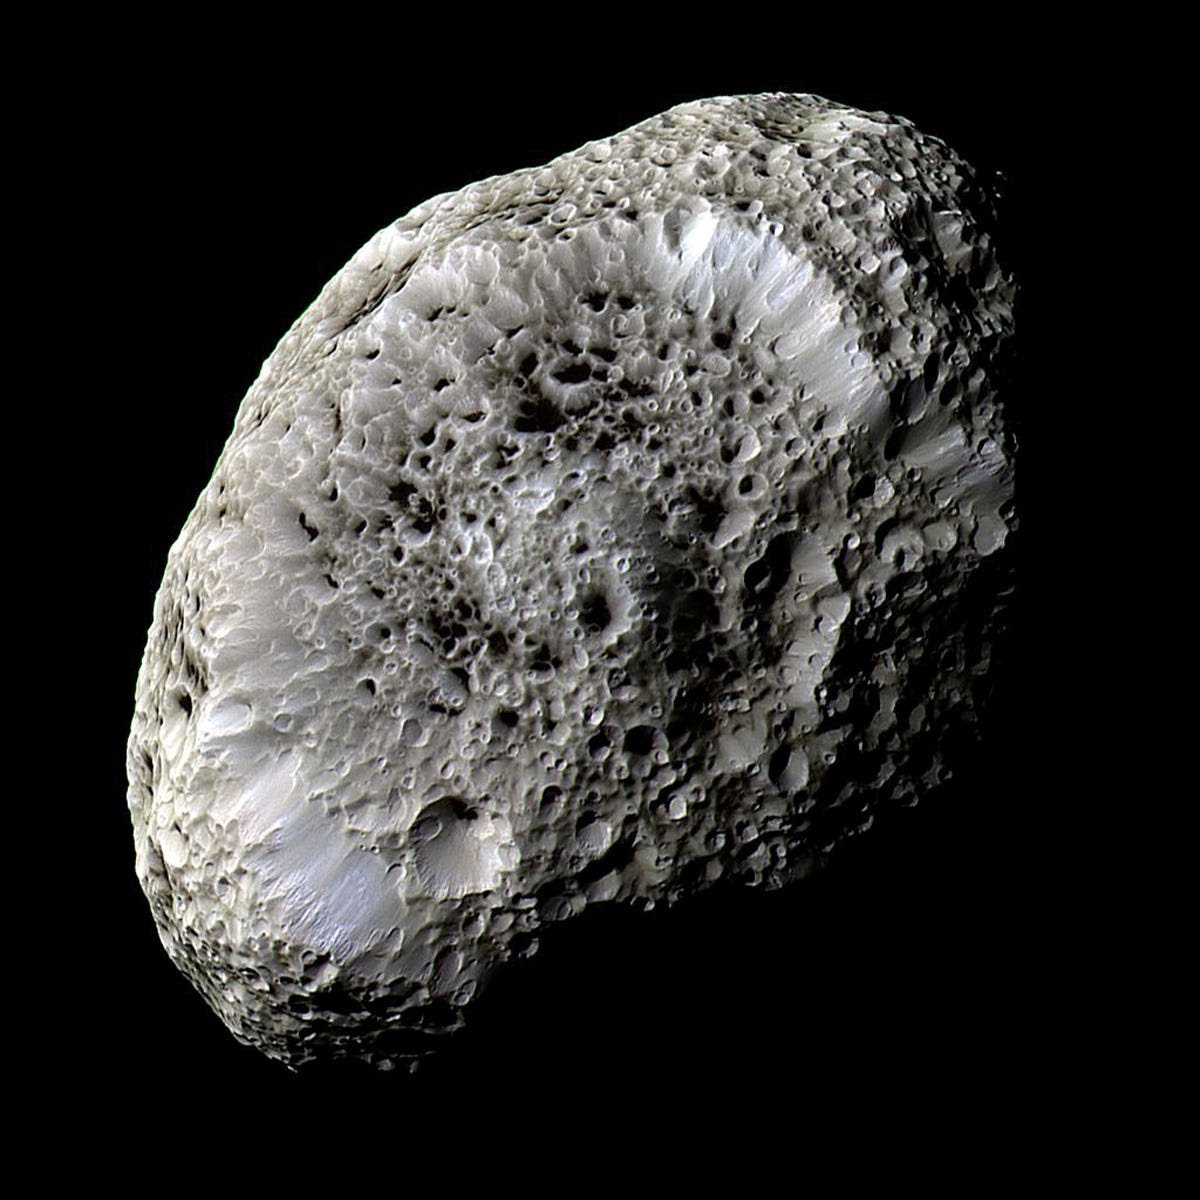 ...And pockmarked Hyperion.